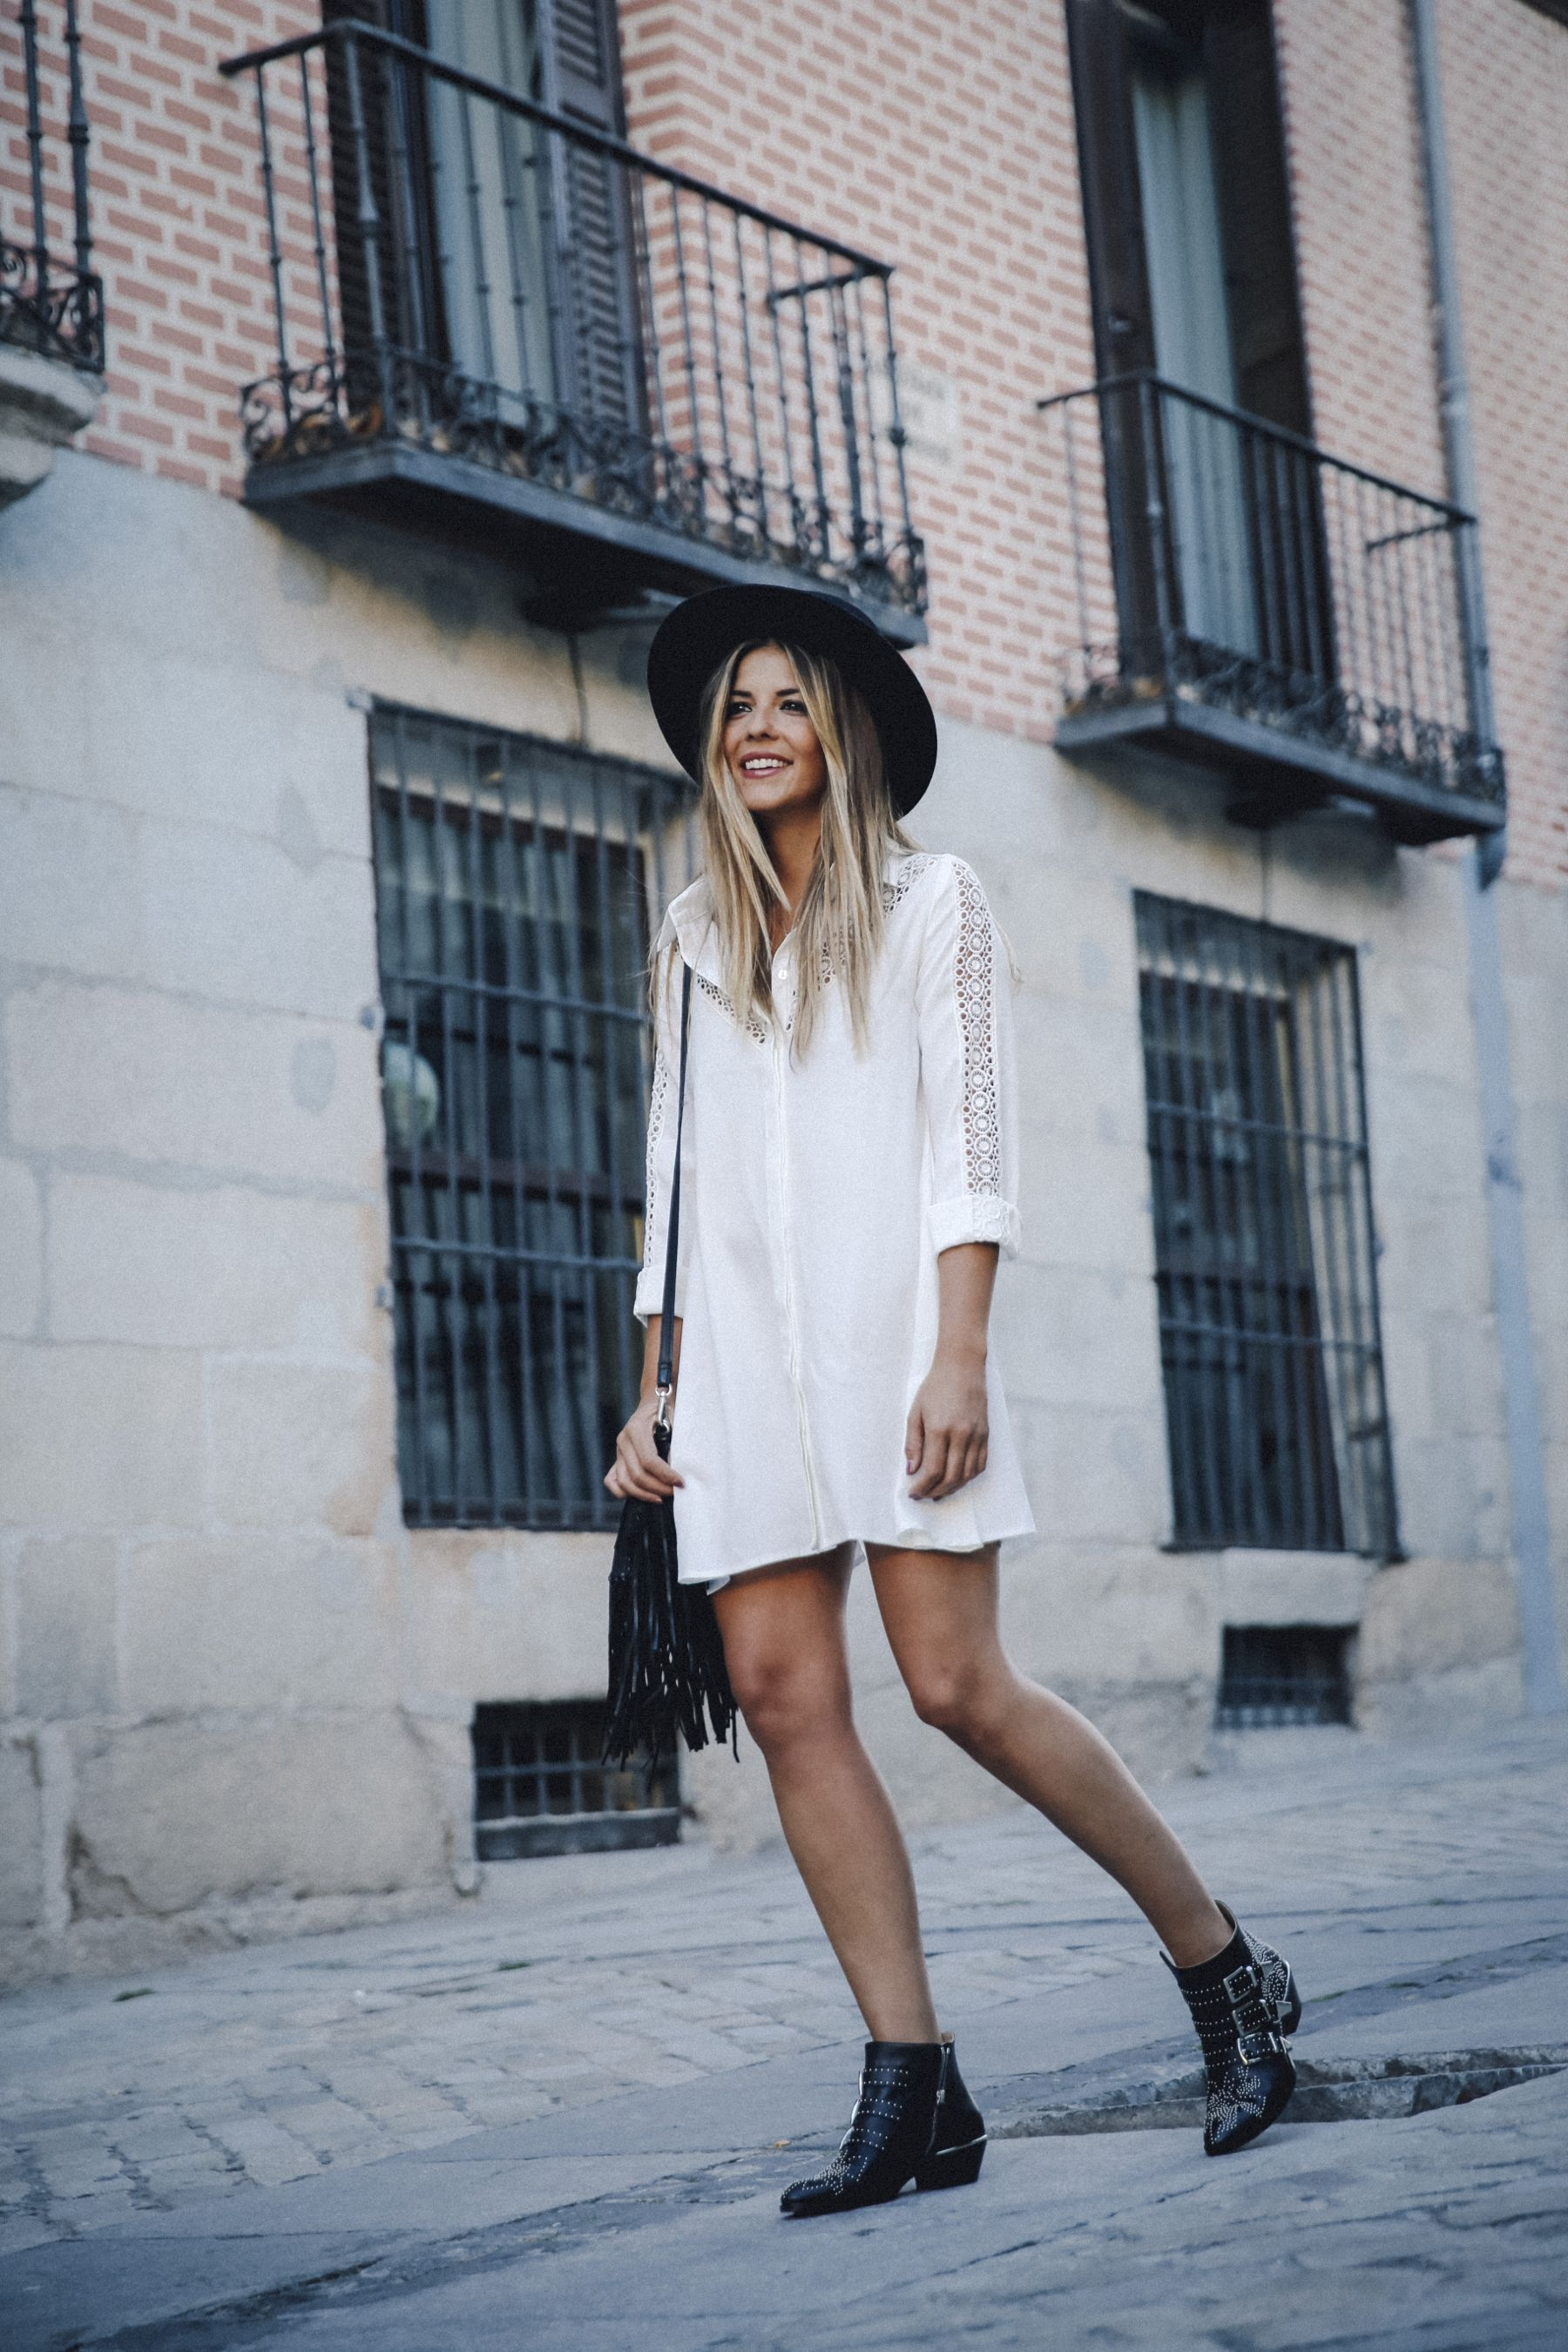 Natalia Cabezas has opted for a more sophisticated, contemporary take on the bohemian style. In a cute white lace detailed shirt dress, Natalia looks relaxed and ready for summer! Try this look with ankle boots and a fedora to get that retro feel. Dress: Asos, Hat: Brixton, Bag: Zara, Boots: Chloe via Farfetch.es.